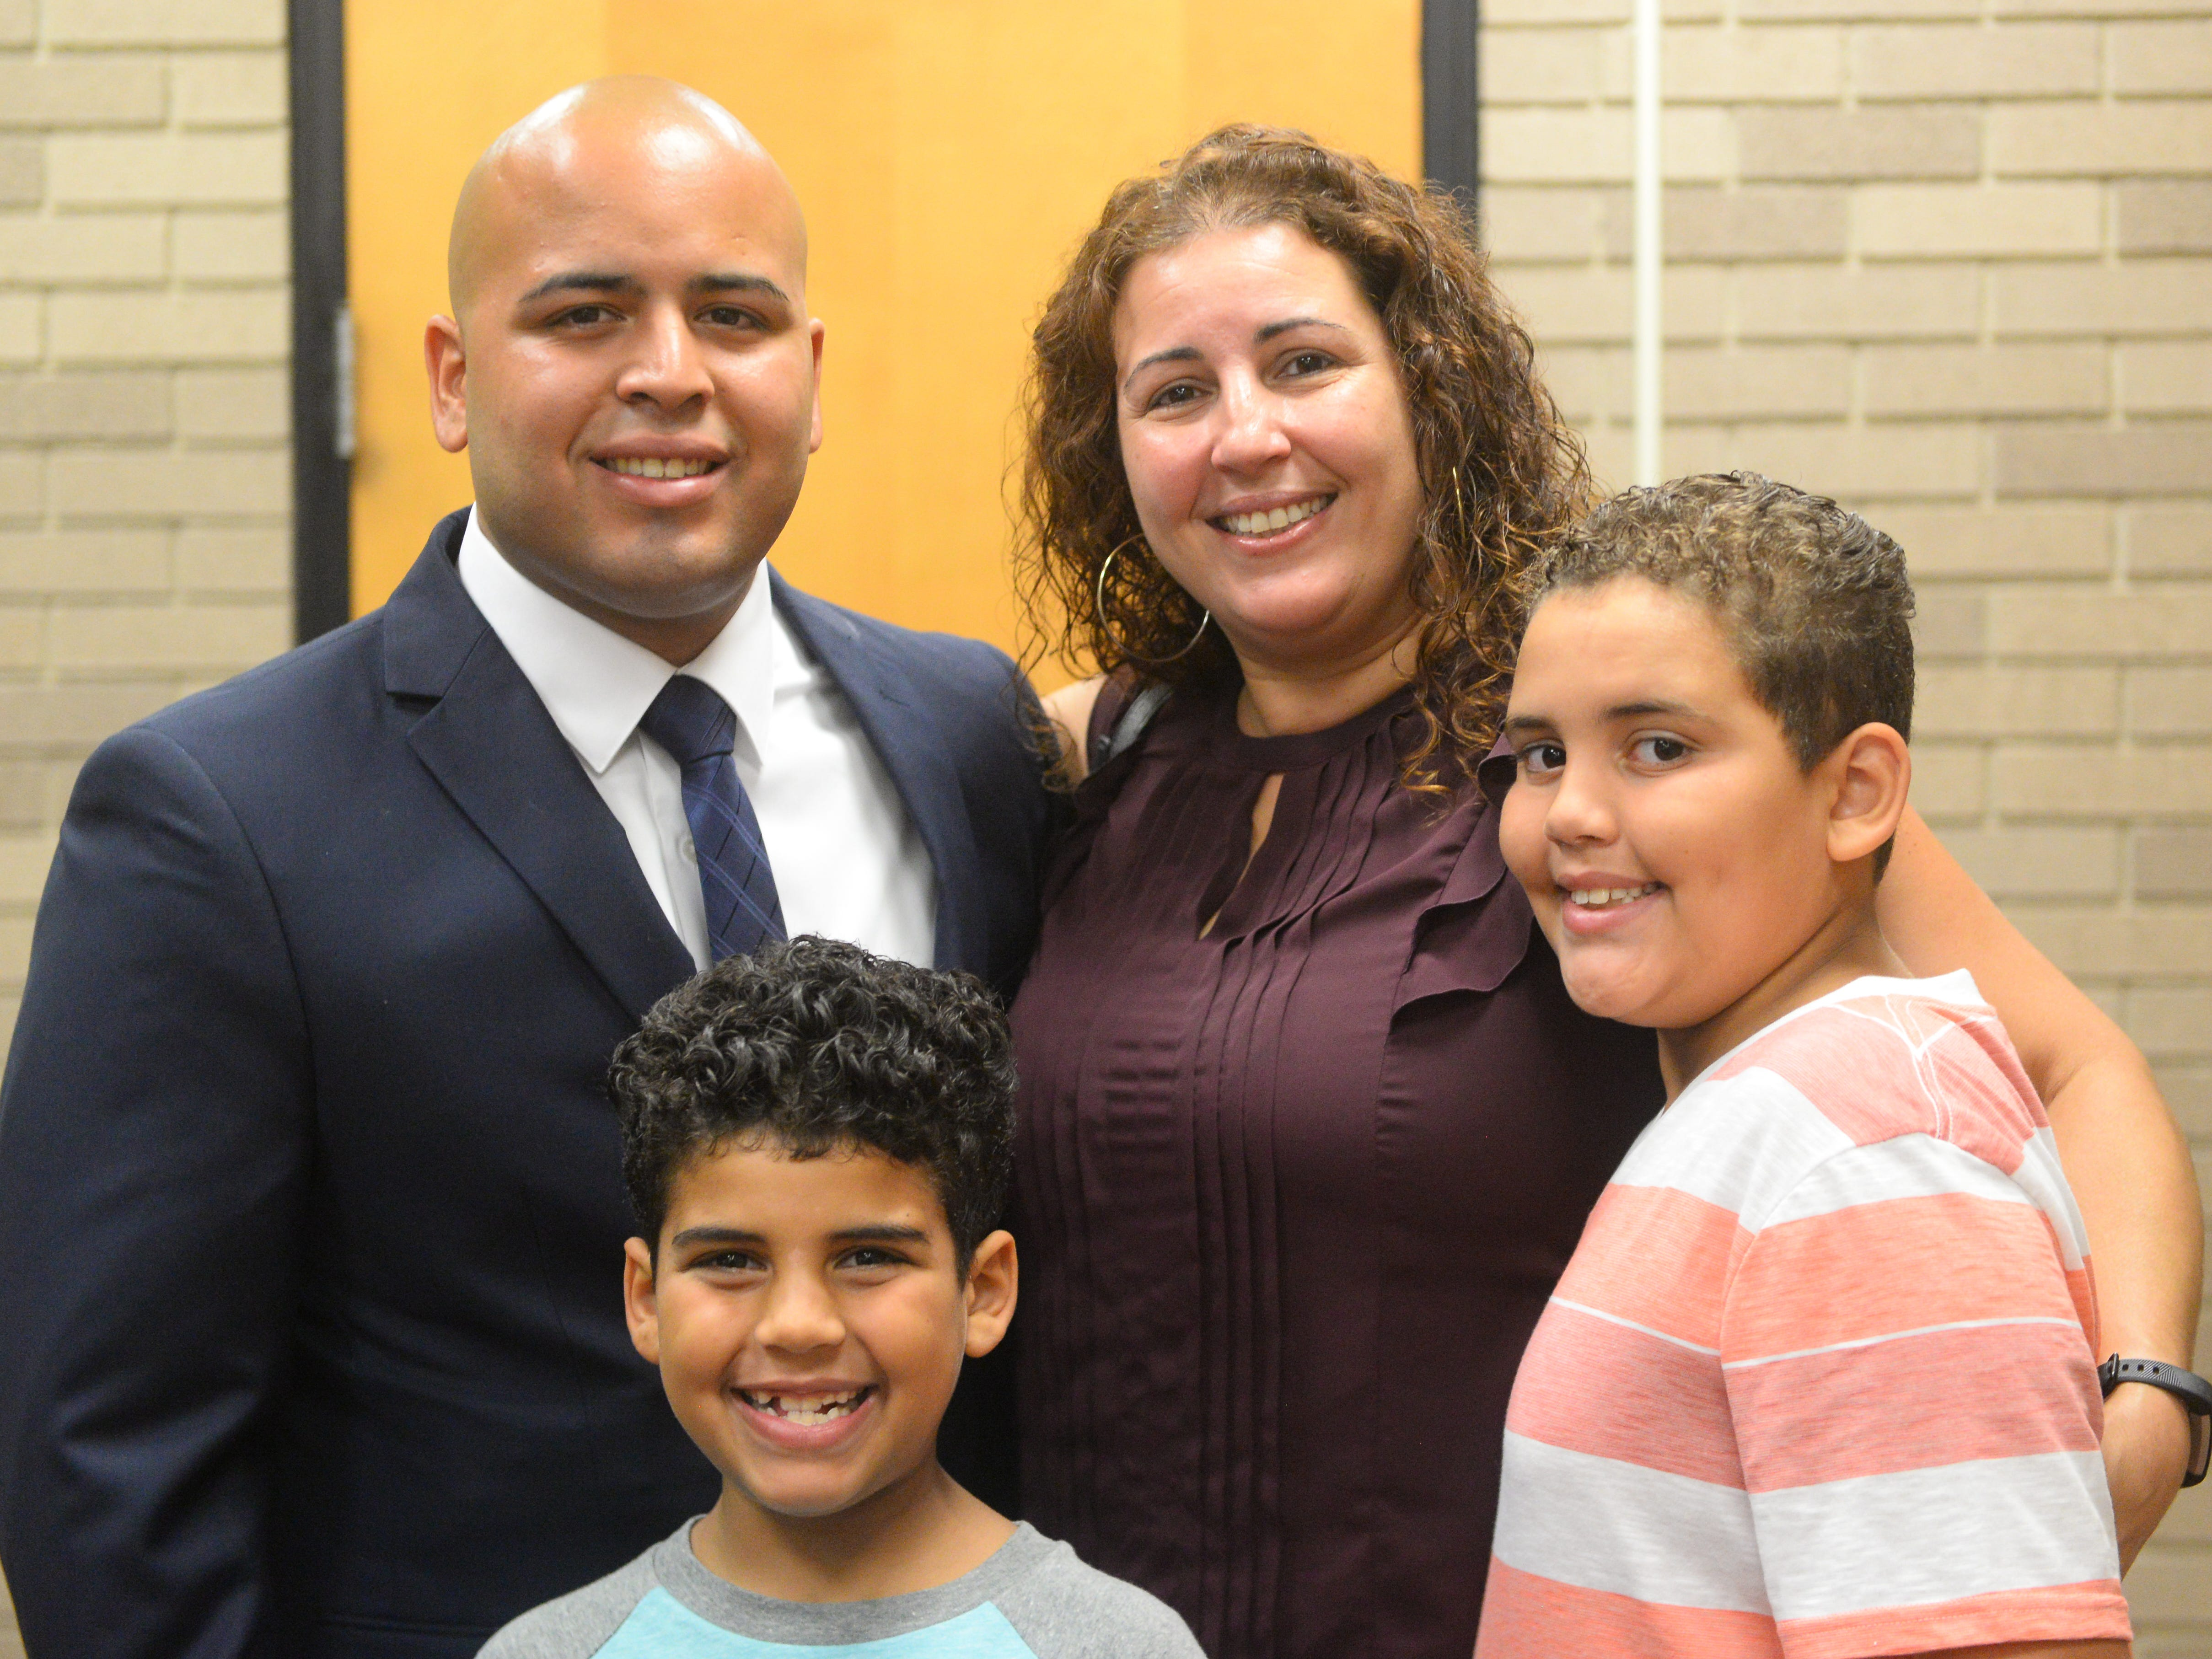 Kyle J. Arbona, 25, celebrates with family after being sworn in as a Vineland police recruit at Vineland City Hall on Thursday, August 2.